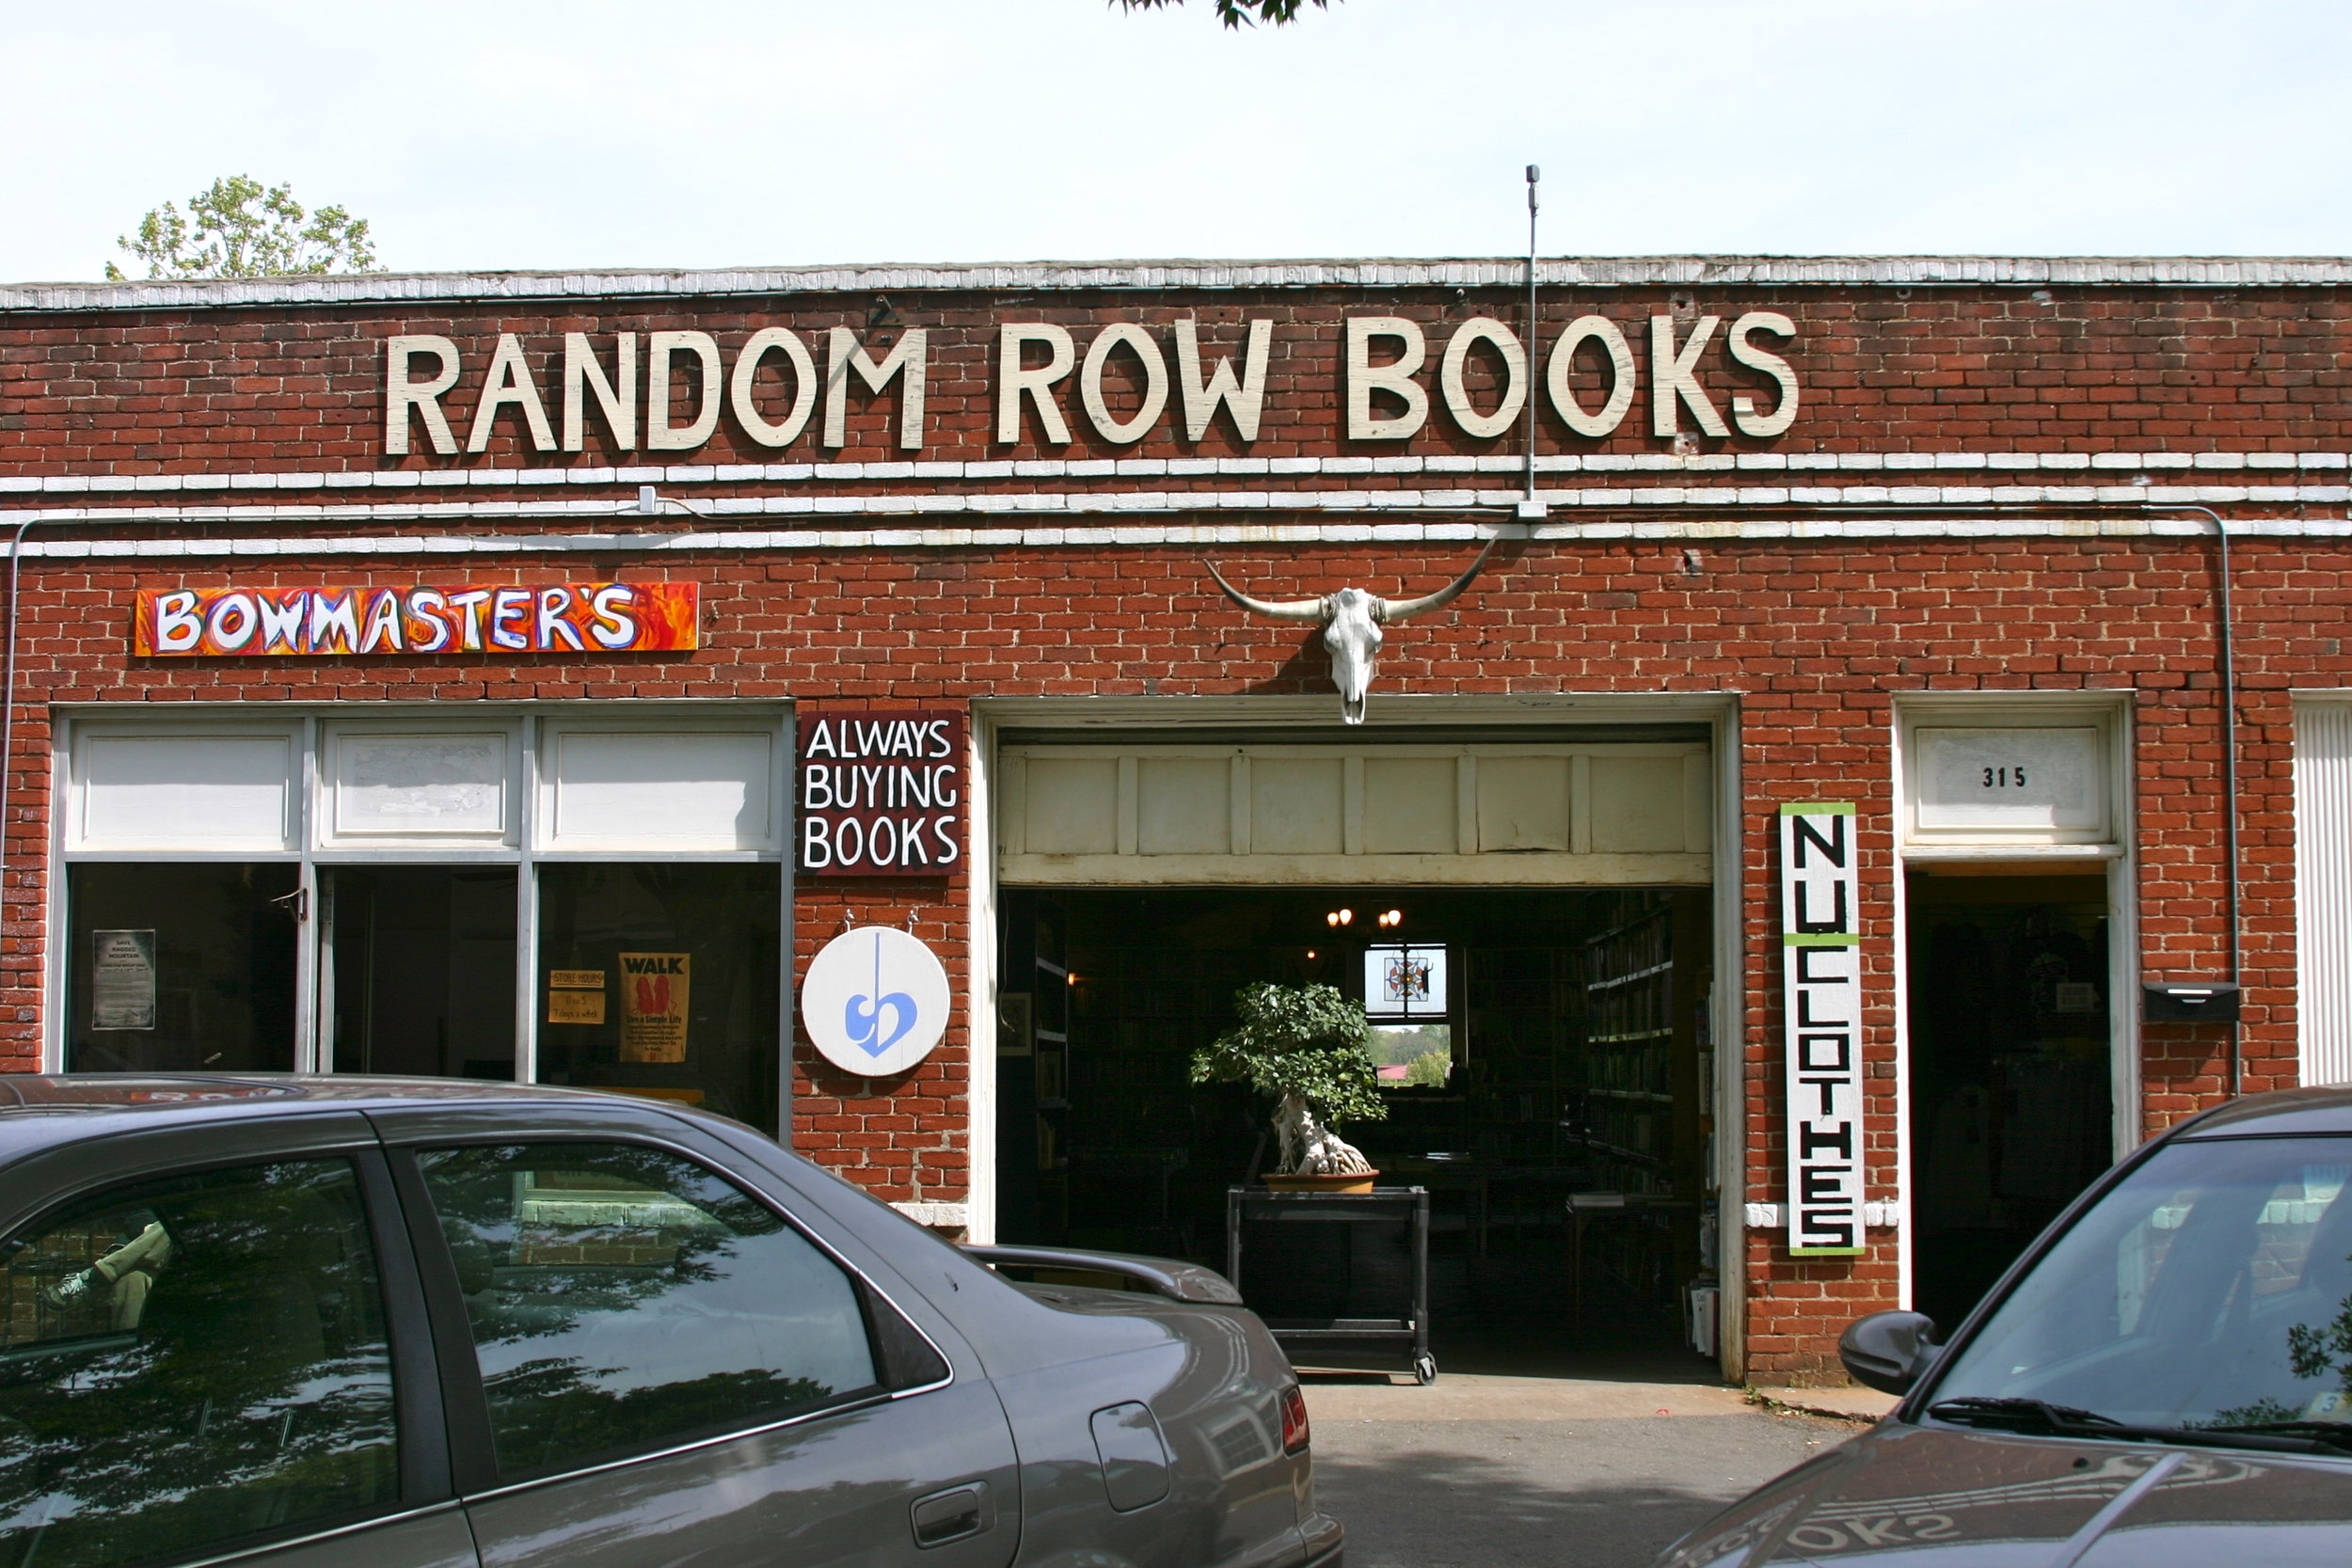 Random Row Books, Main St., Charlottesville, Va., April 2012